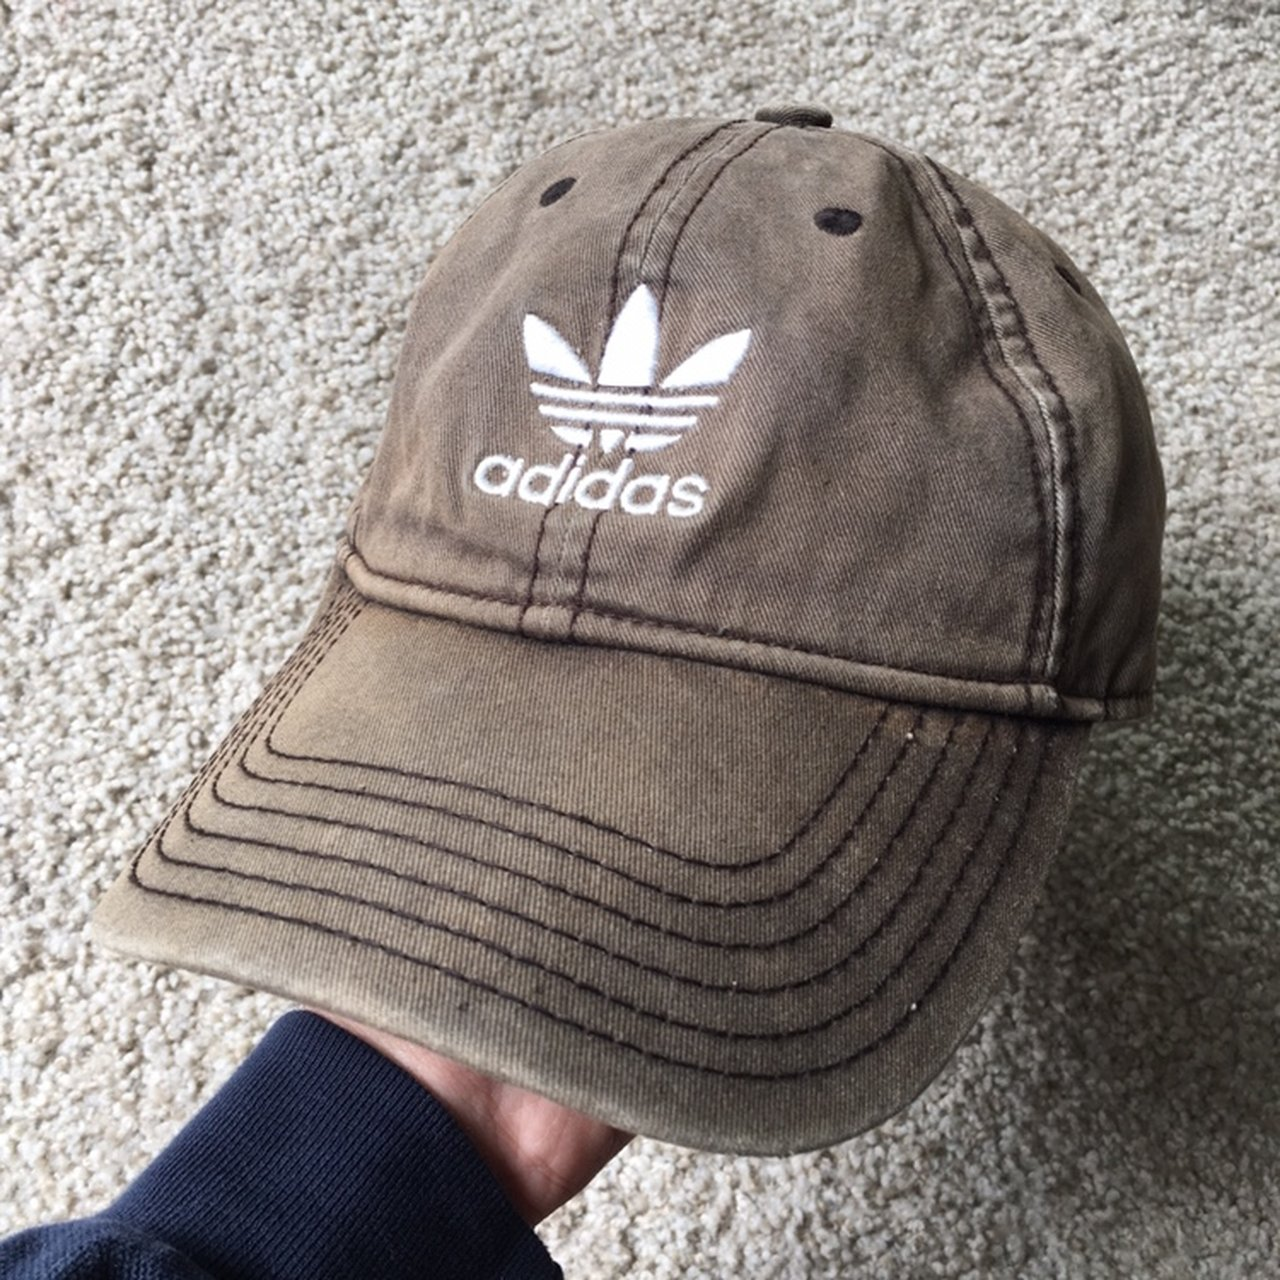 Adidas Embroidered Trefoil Brown Hat Condition  8 10 534451268851